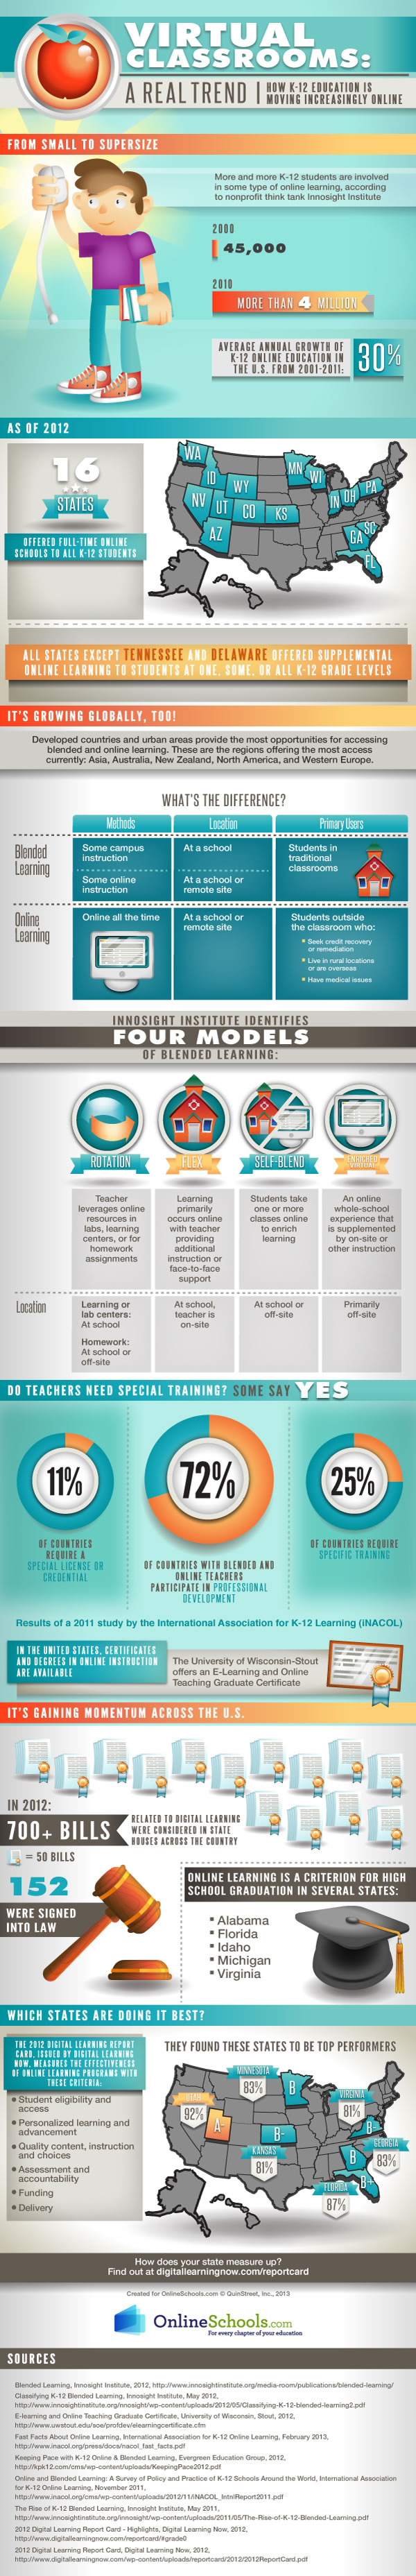 stance Learning and Blended Learning: Trends on the Rise?